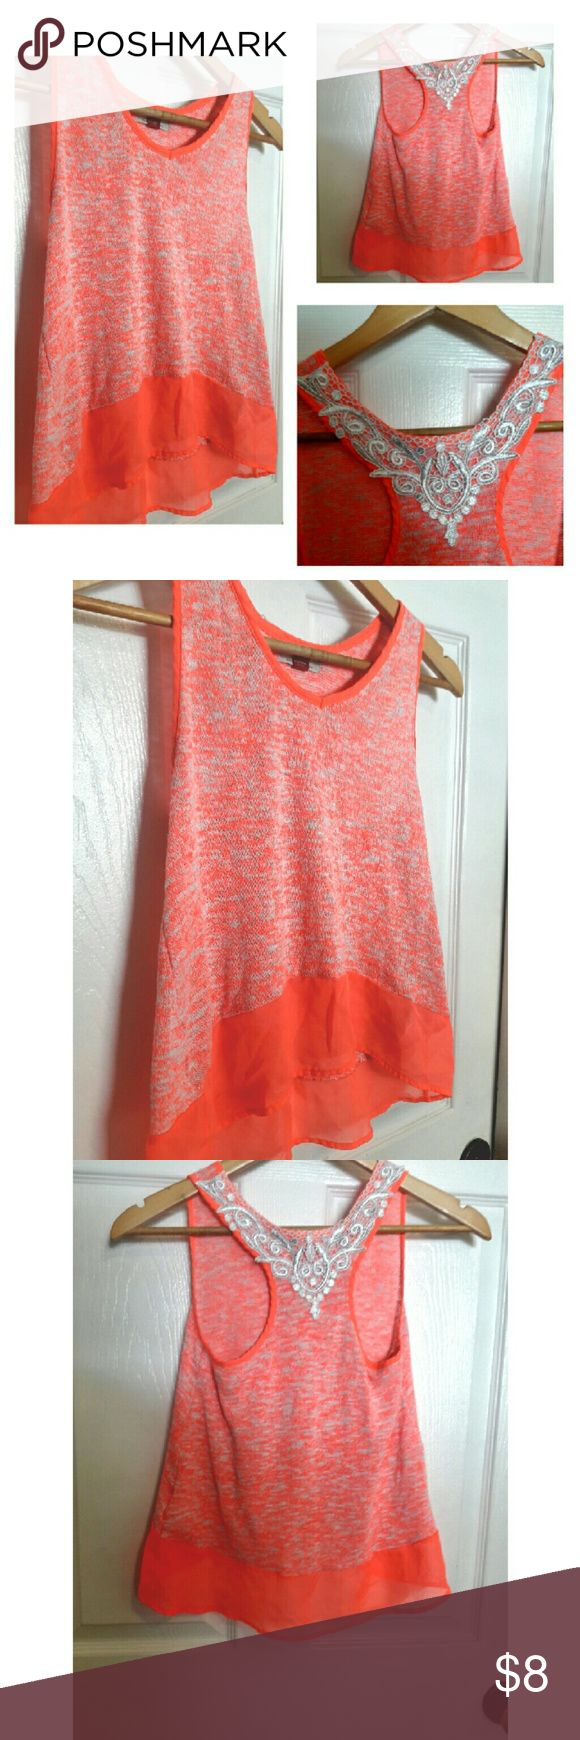 Girls Knit peach top with crocheted back Girls Knit peach top with crocheted back. Size XL. No flaws. Smoke free home!! lei Shirts & Tops